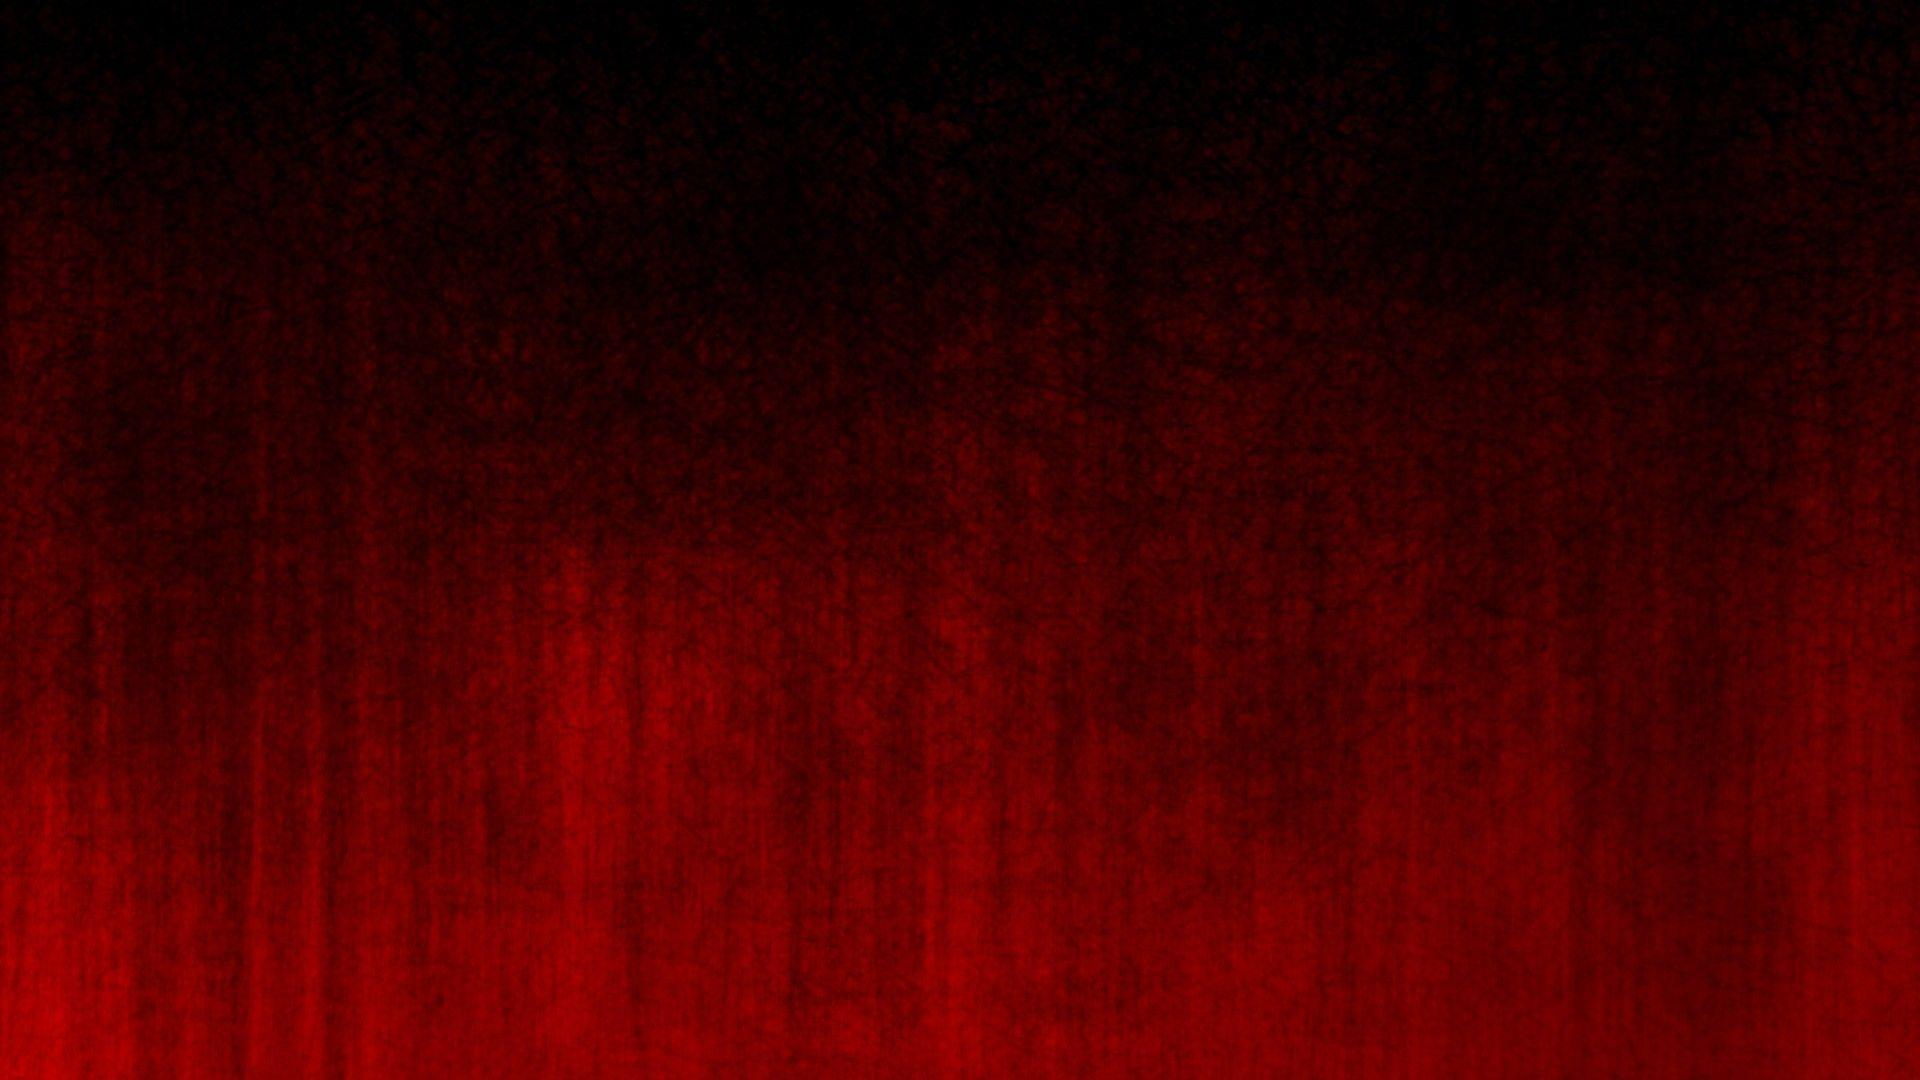 Red Texture backgrounds ·① Download free awesome HD backgrounds